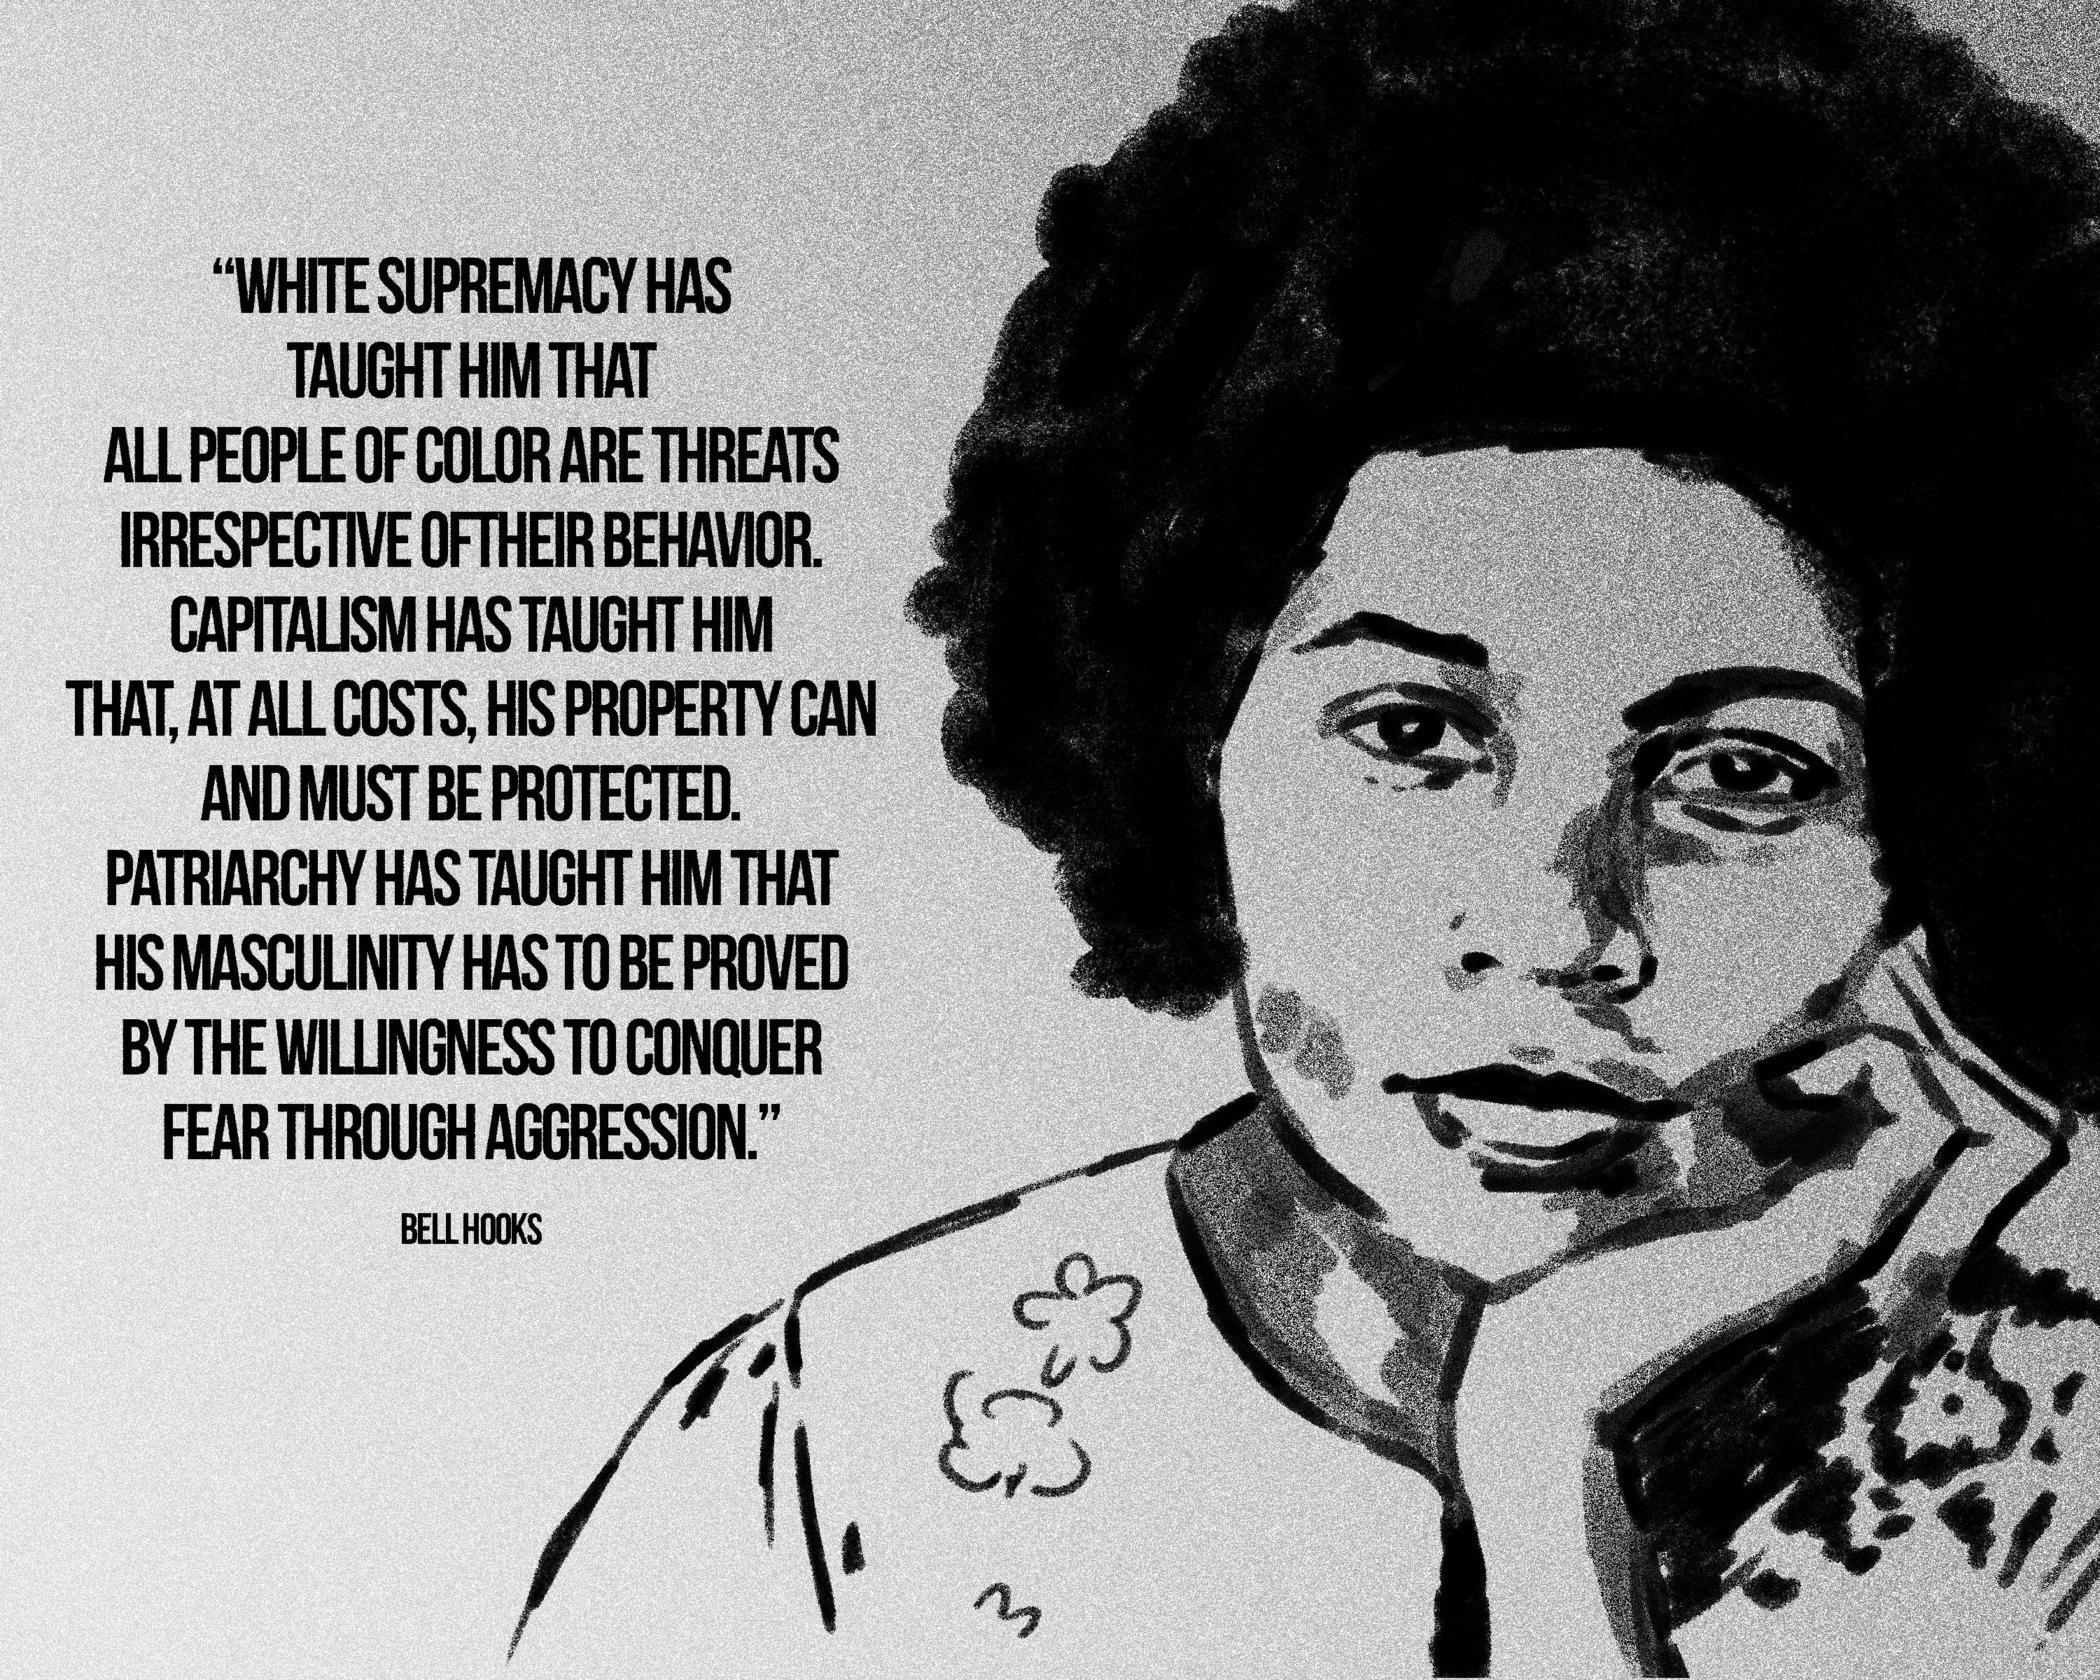 bell hooks quotes google search politics lady bell hooks quotes google search